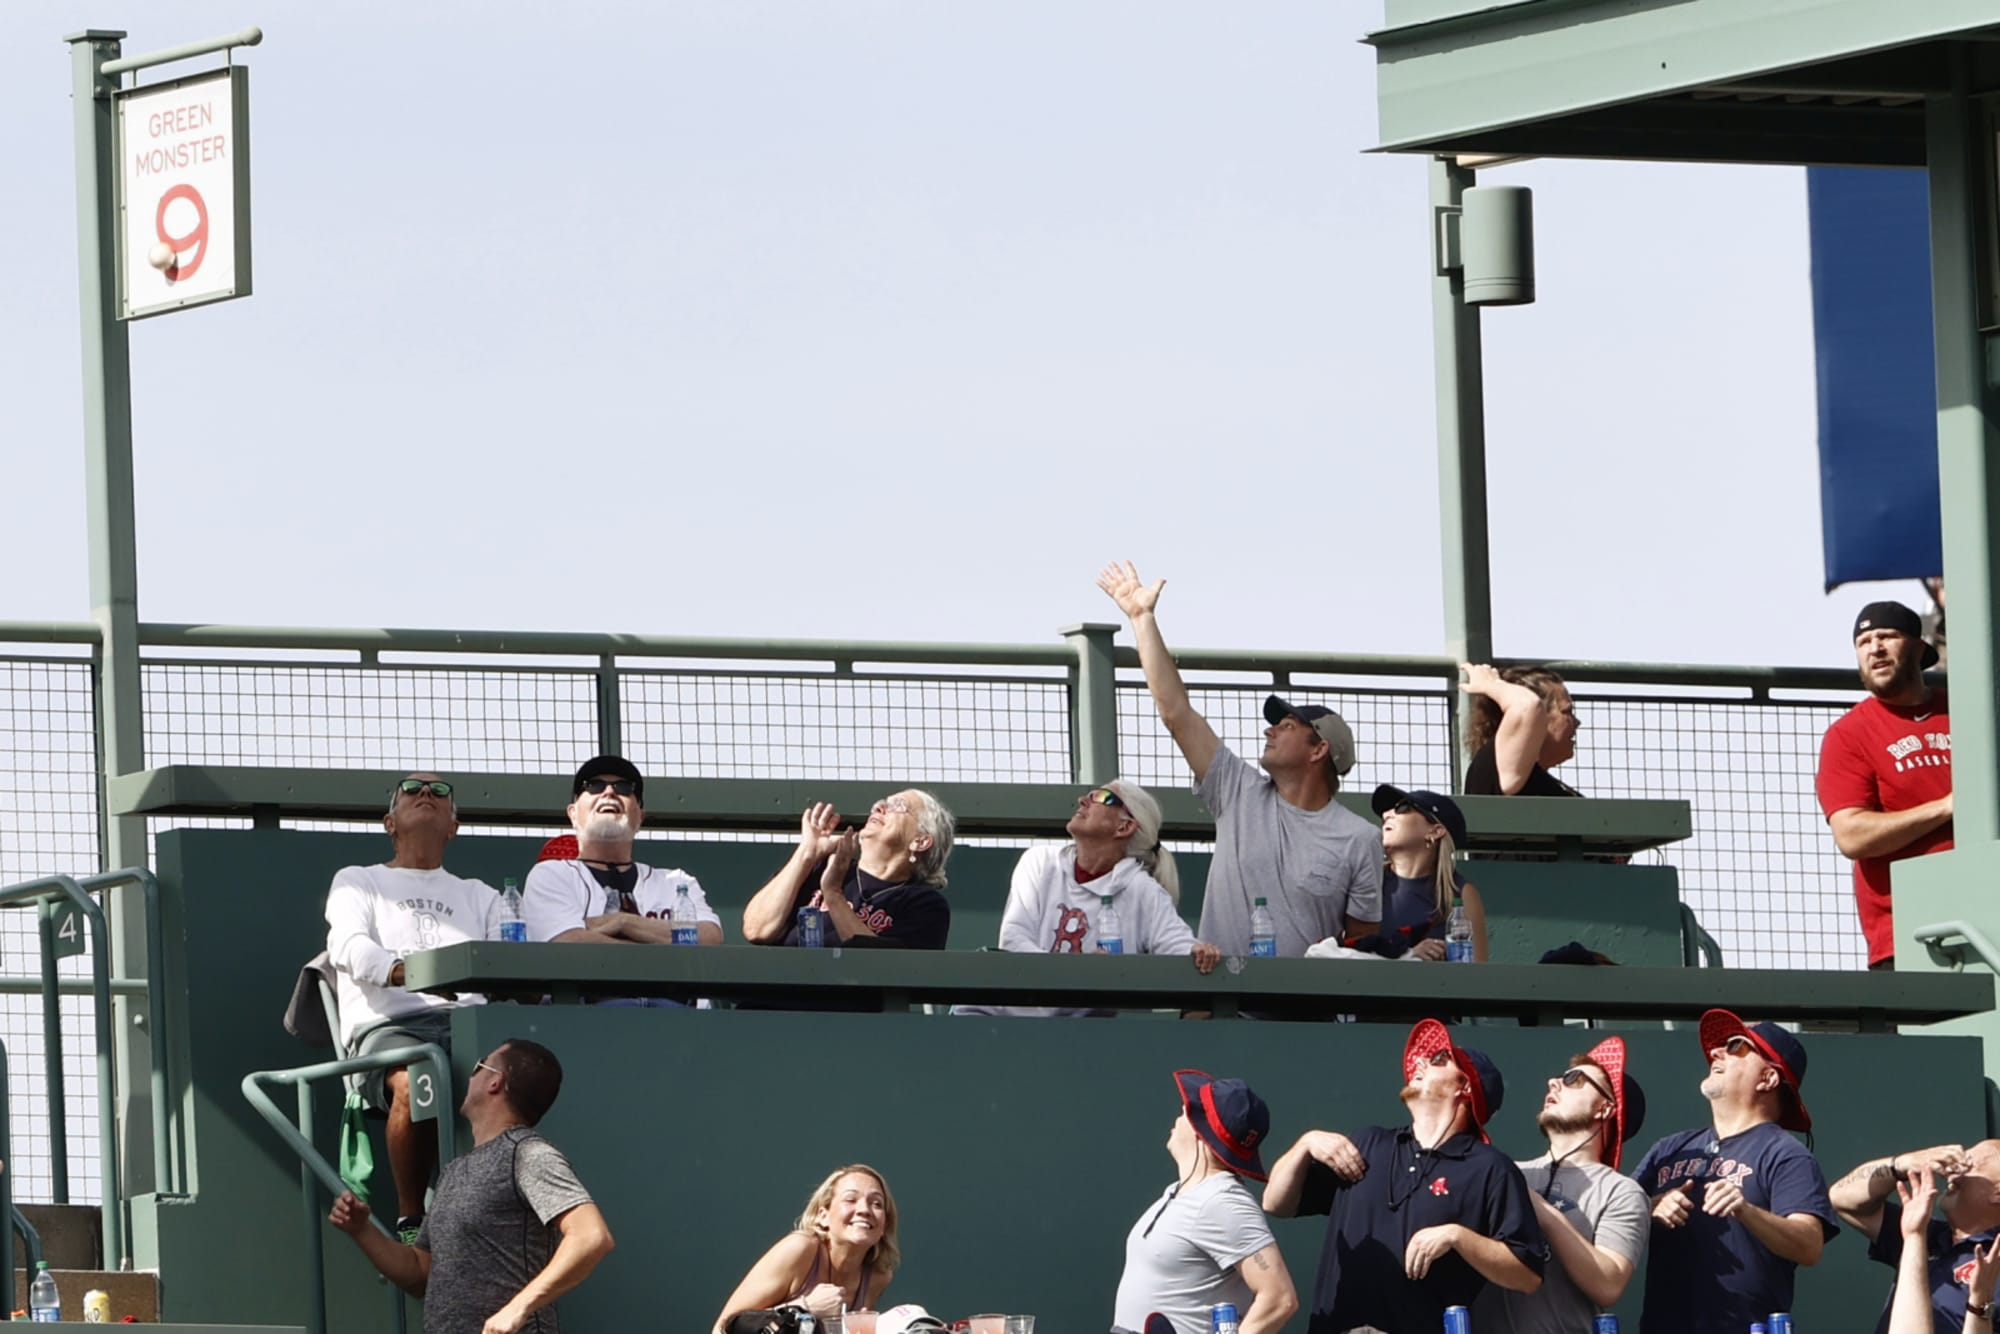 Boston Red Sox: No magic at Fenway as Jays go on home run barrage